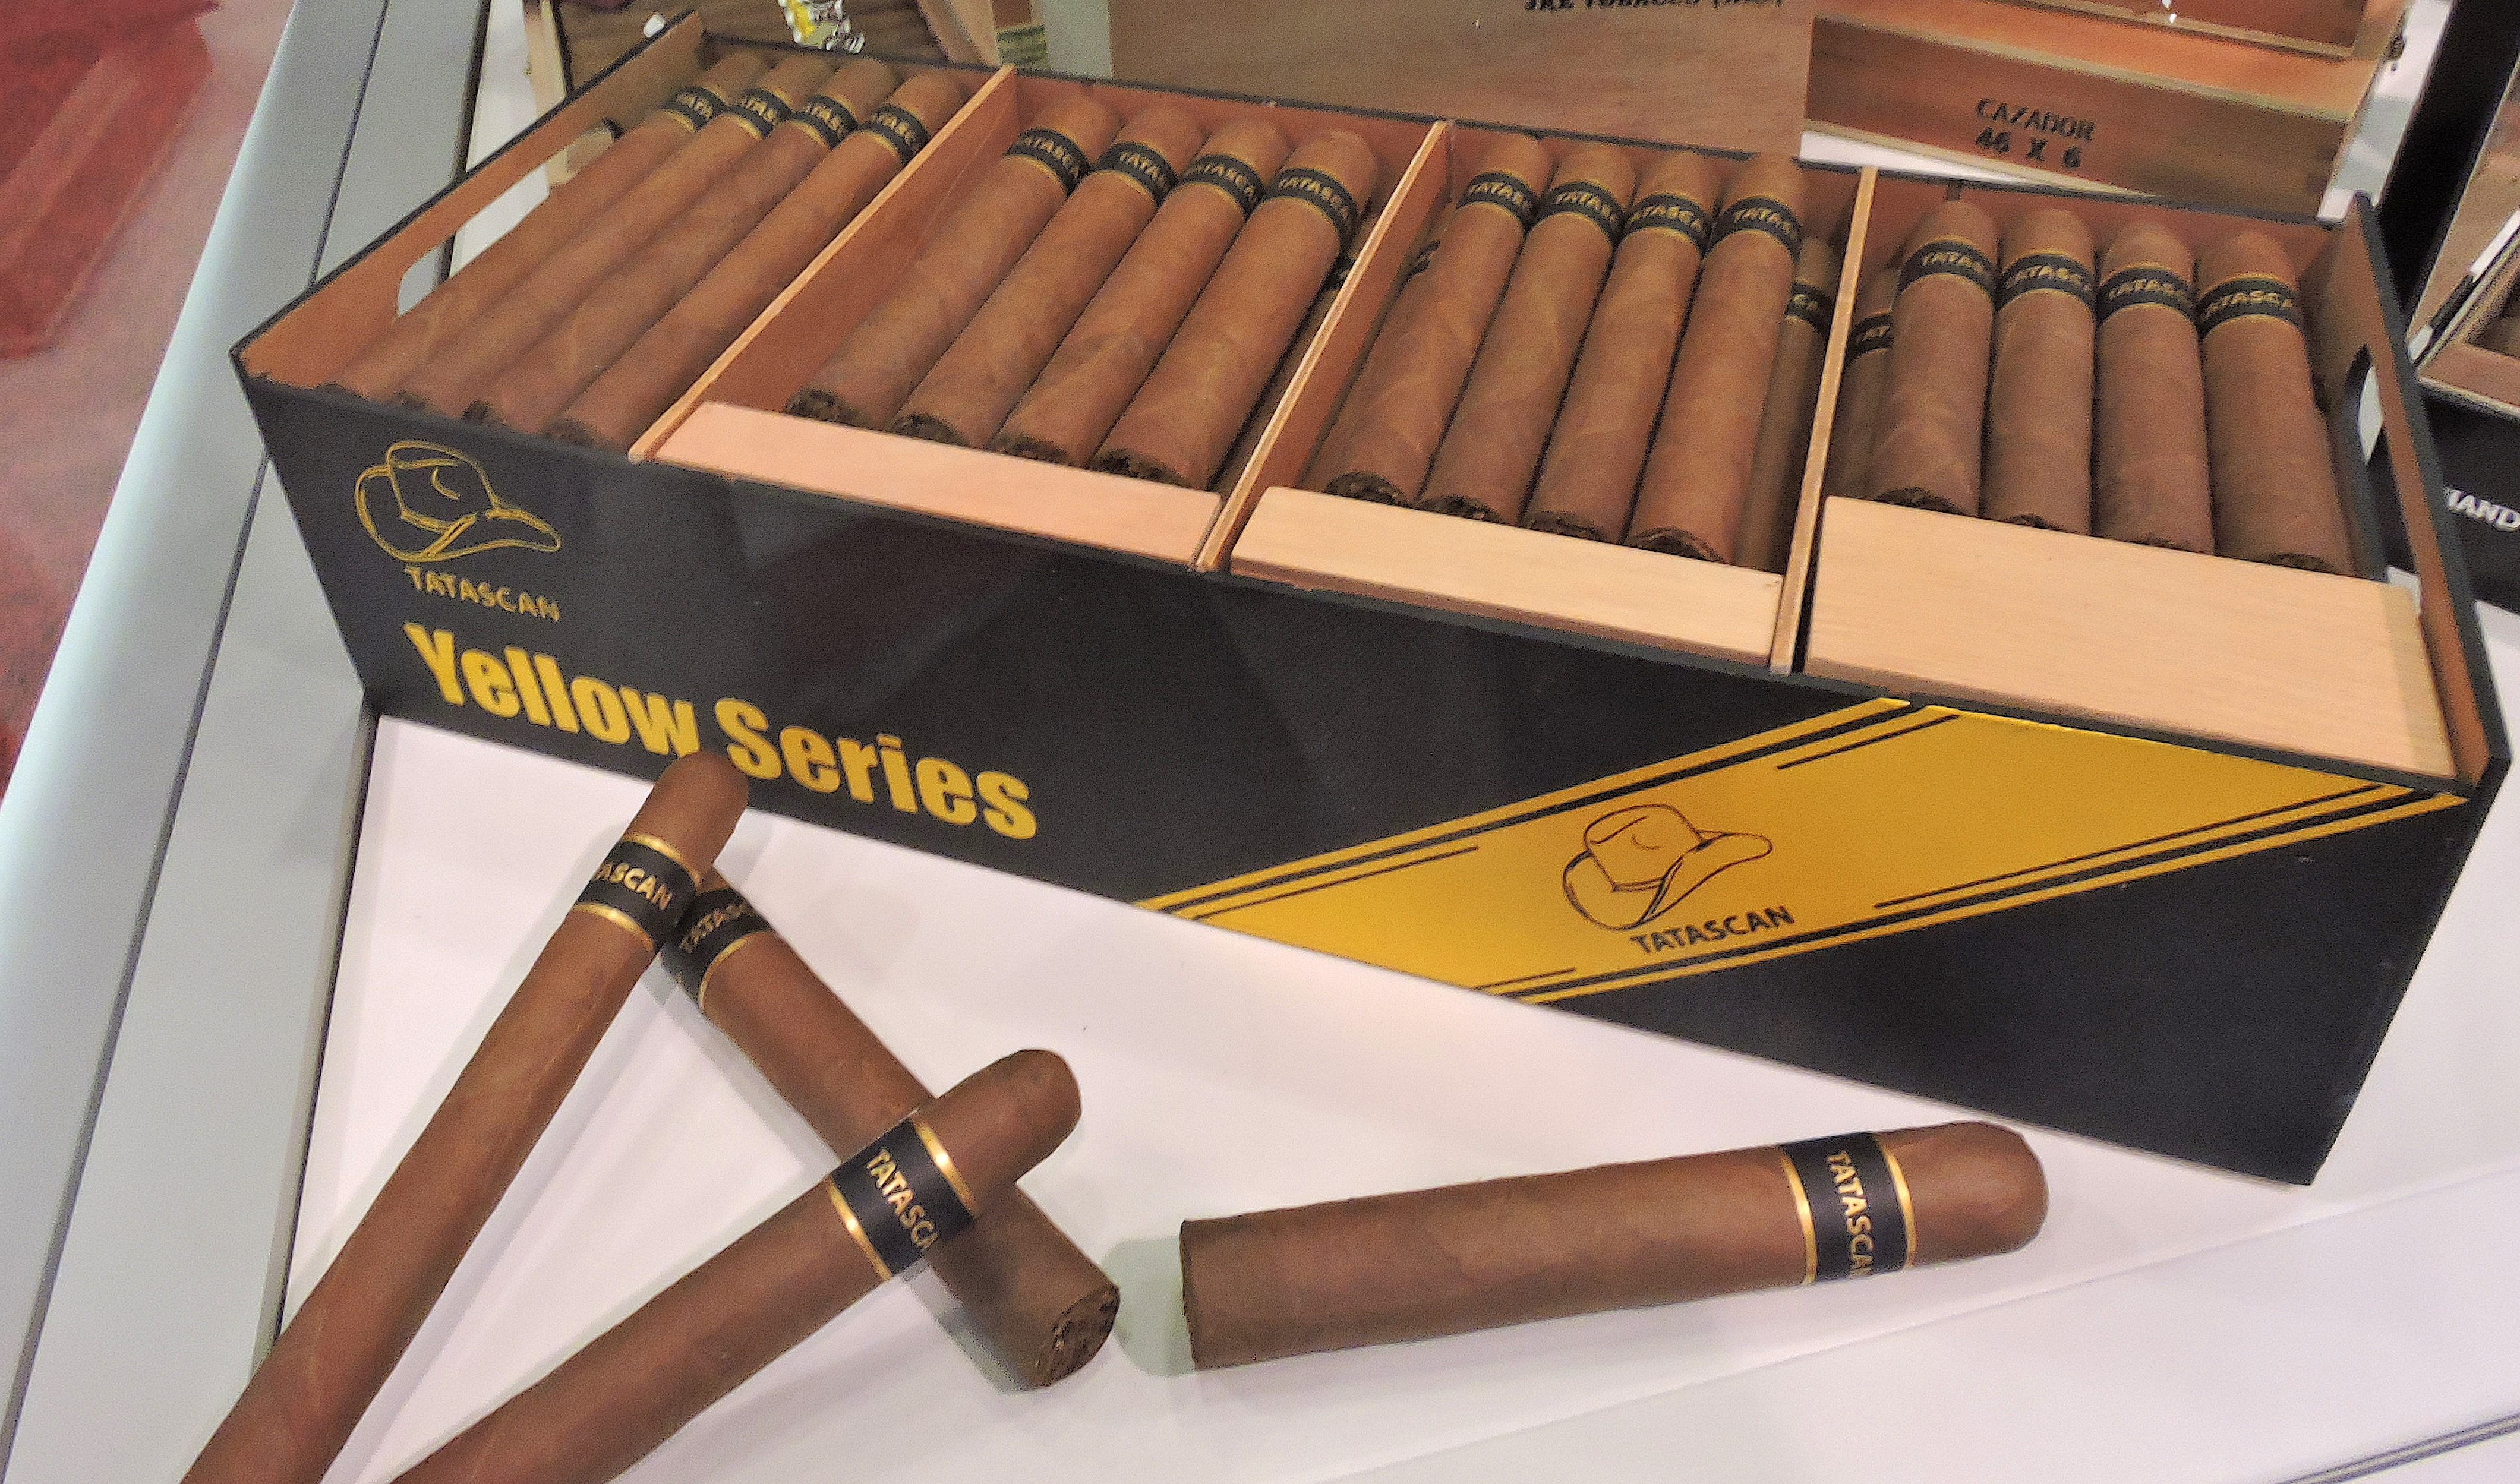 Cigar News: JRE Tobacco Introduces New Banding for Tatascan Yellow